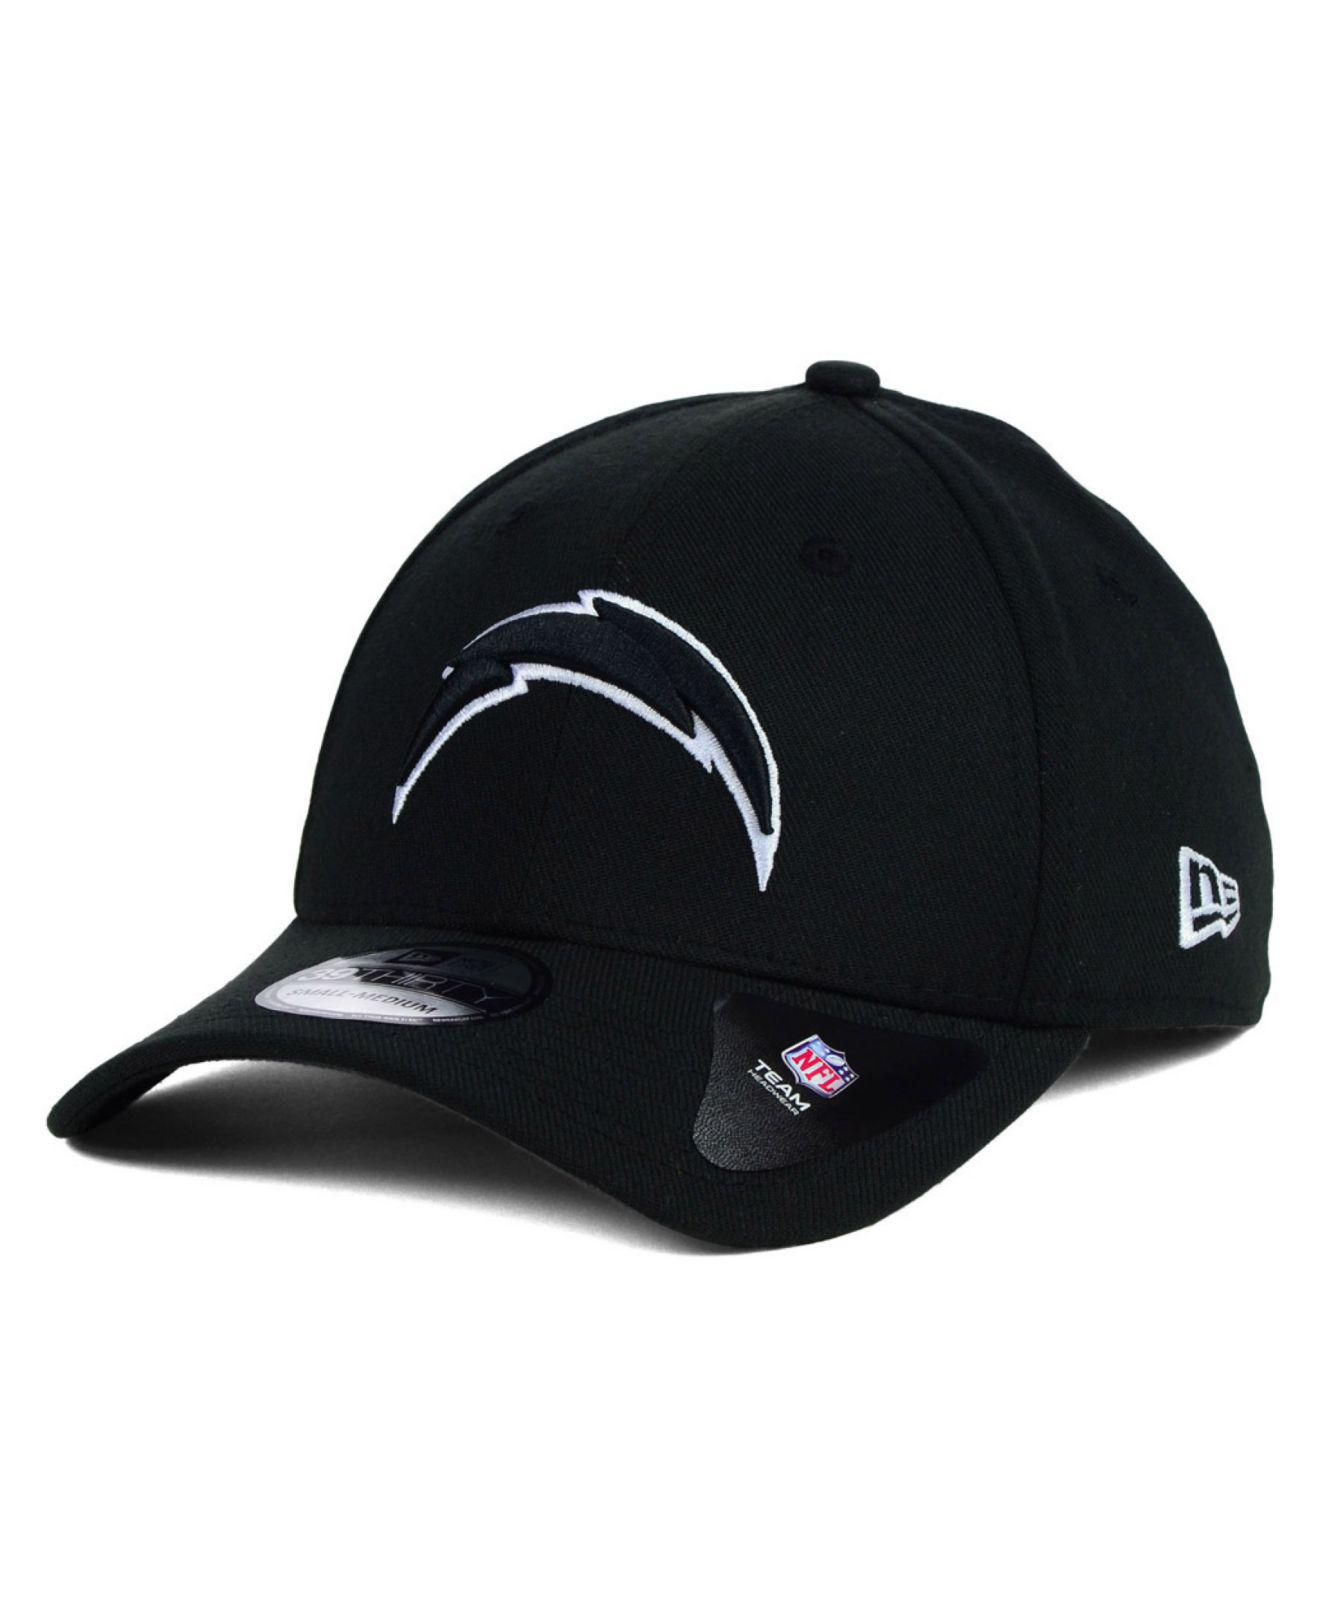 8d2dd0faa3b751 KTZ San Diego Chargers Black and White Classic 39thirty Cap in Black ...